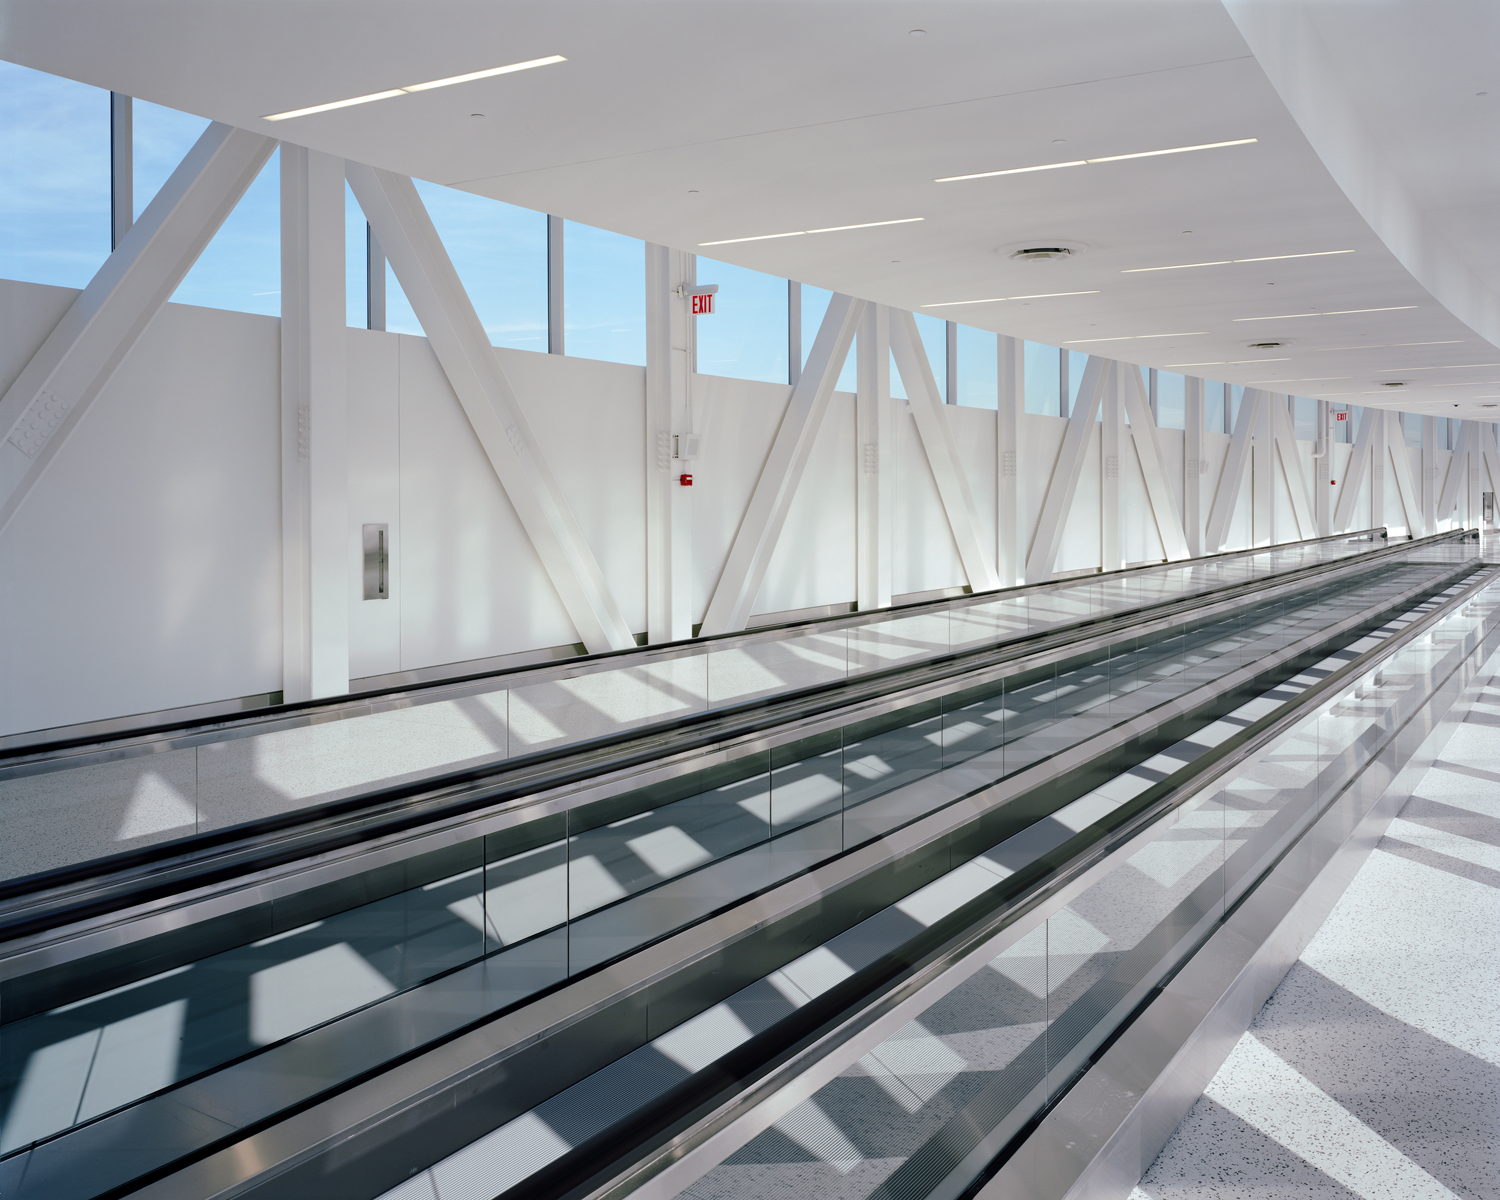 t5_skywalk-29.jpg